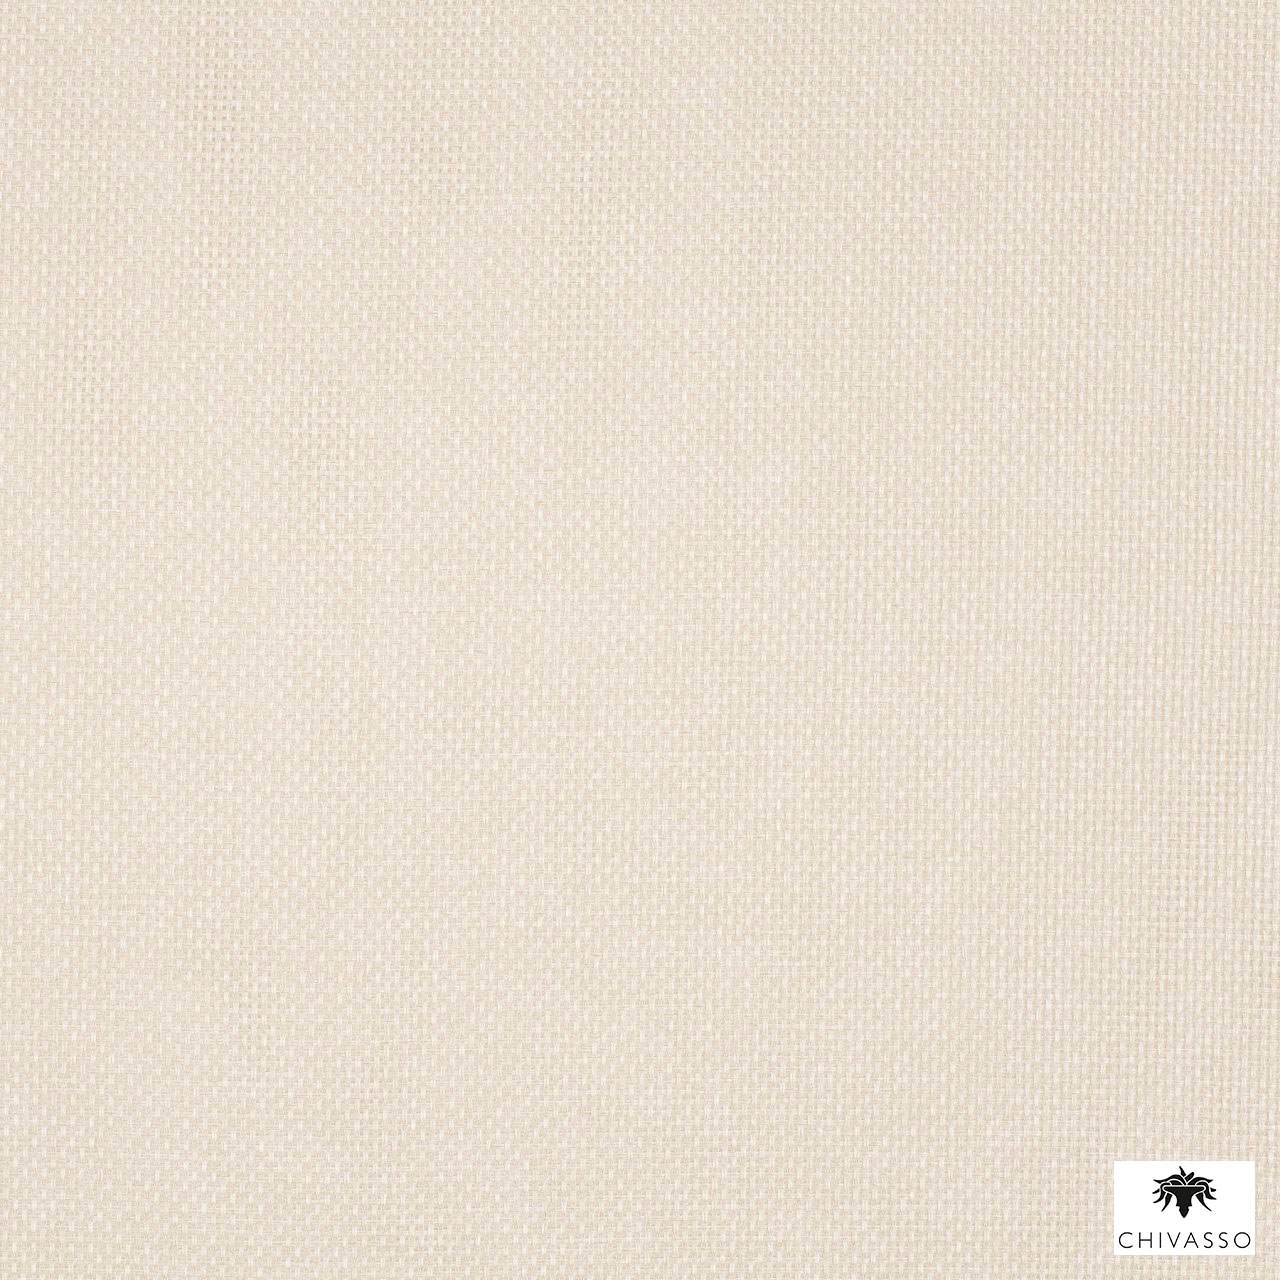 Chivasso - Twinkle - Ch2740-072  | Curtain Fabric - Beige, Plain, Synthetic, Domestic Use, Railroaded, Wide Width